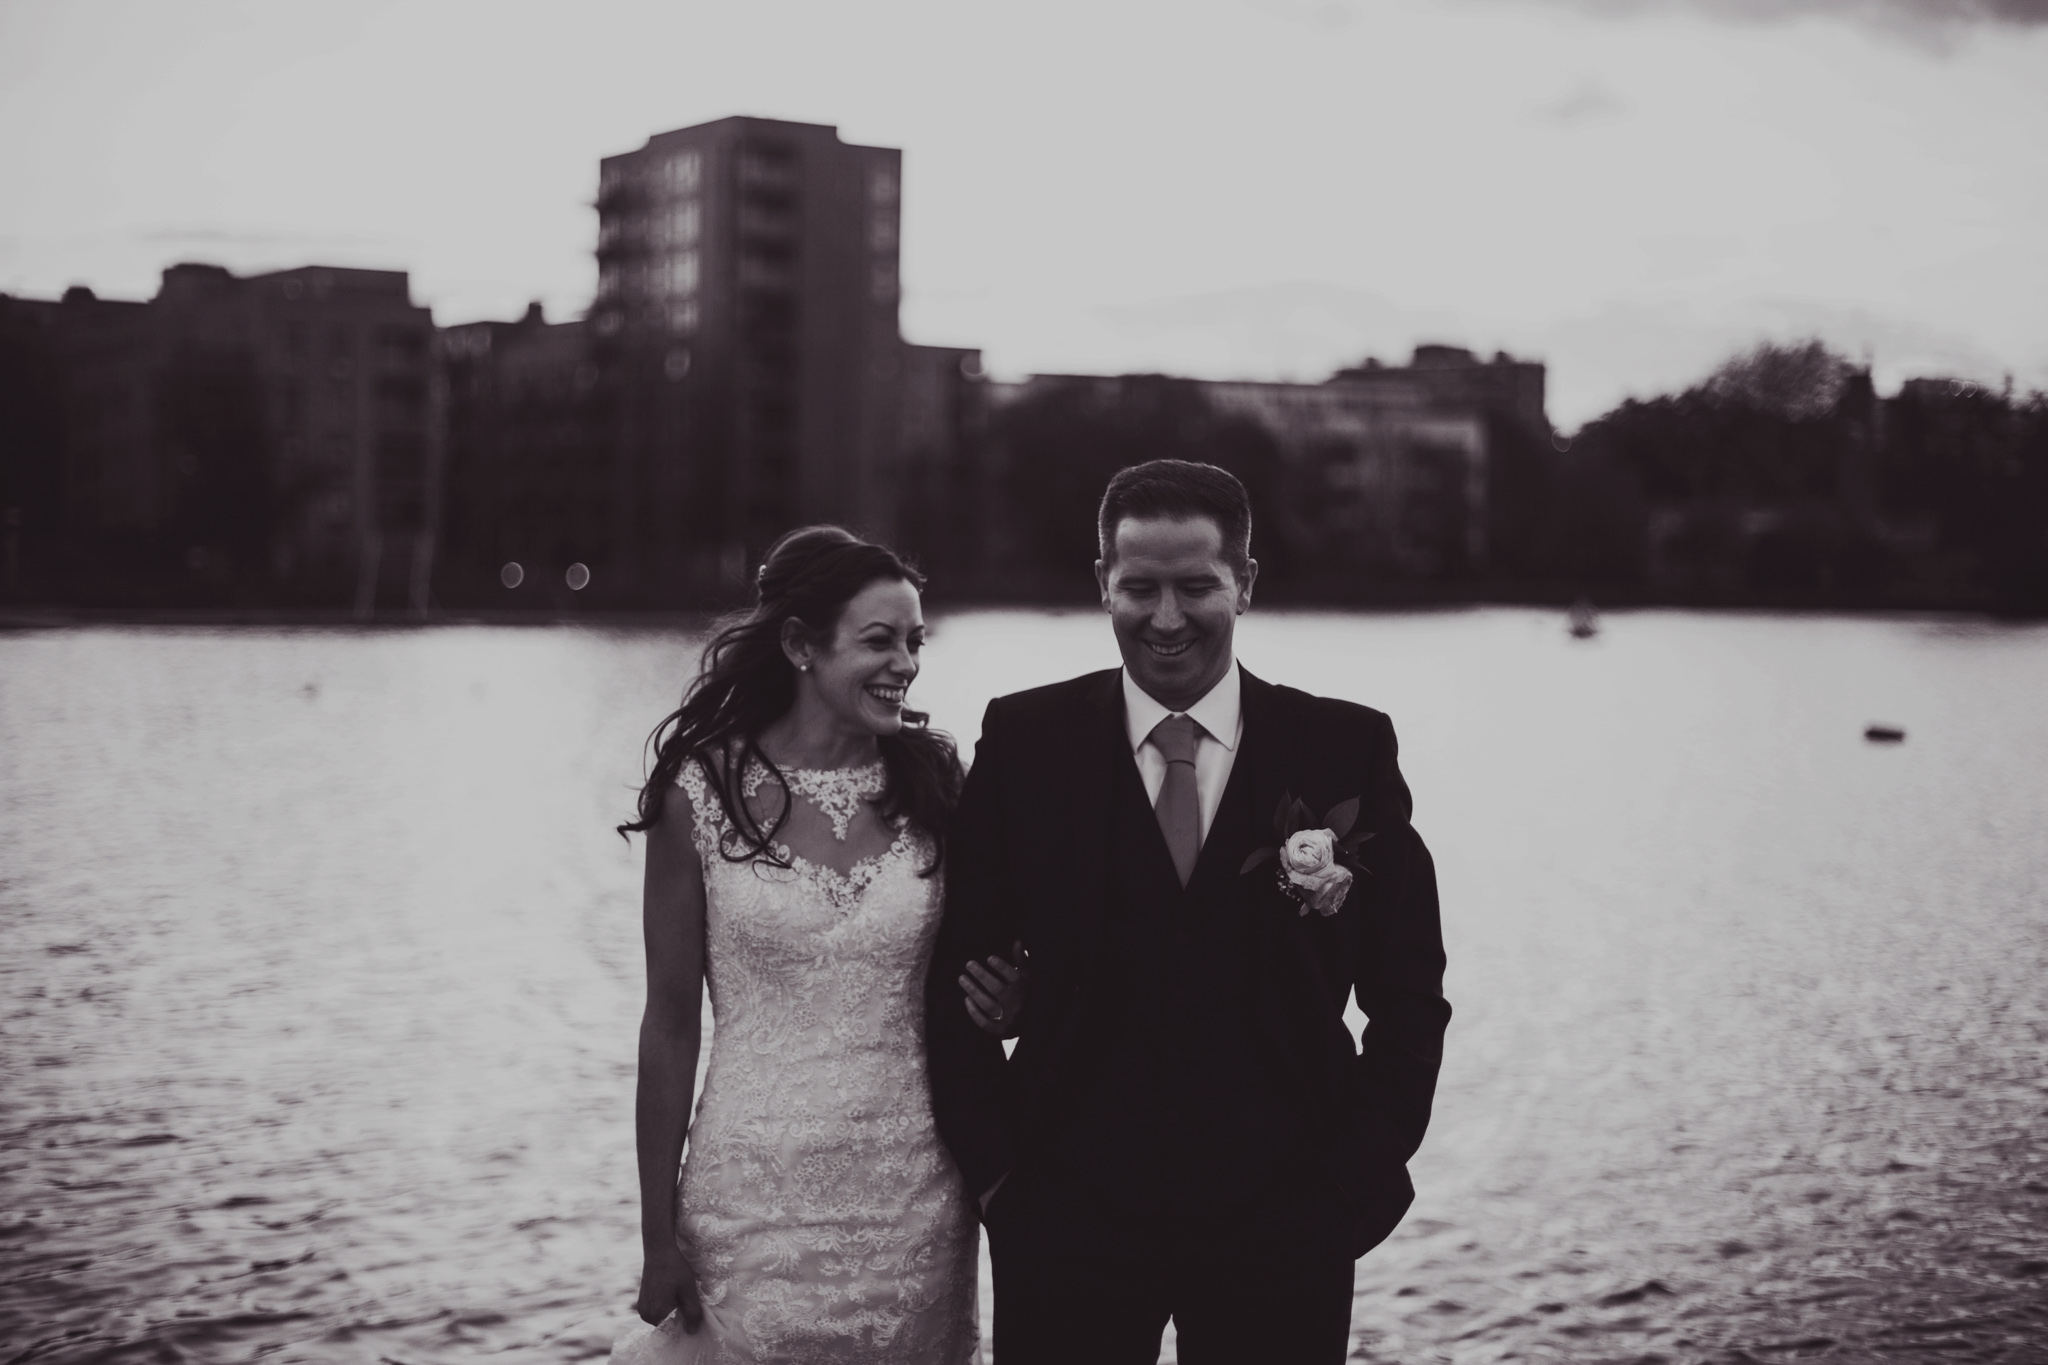 Mary + Richard // West Reservoir Centre, N4